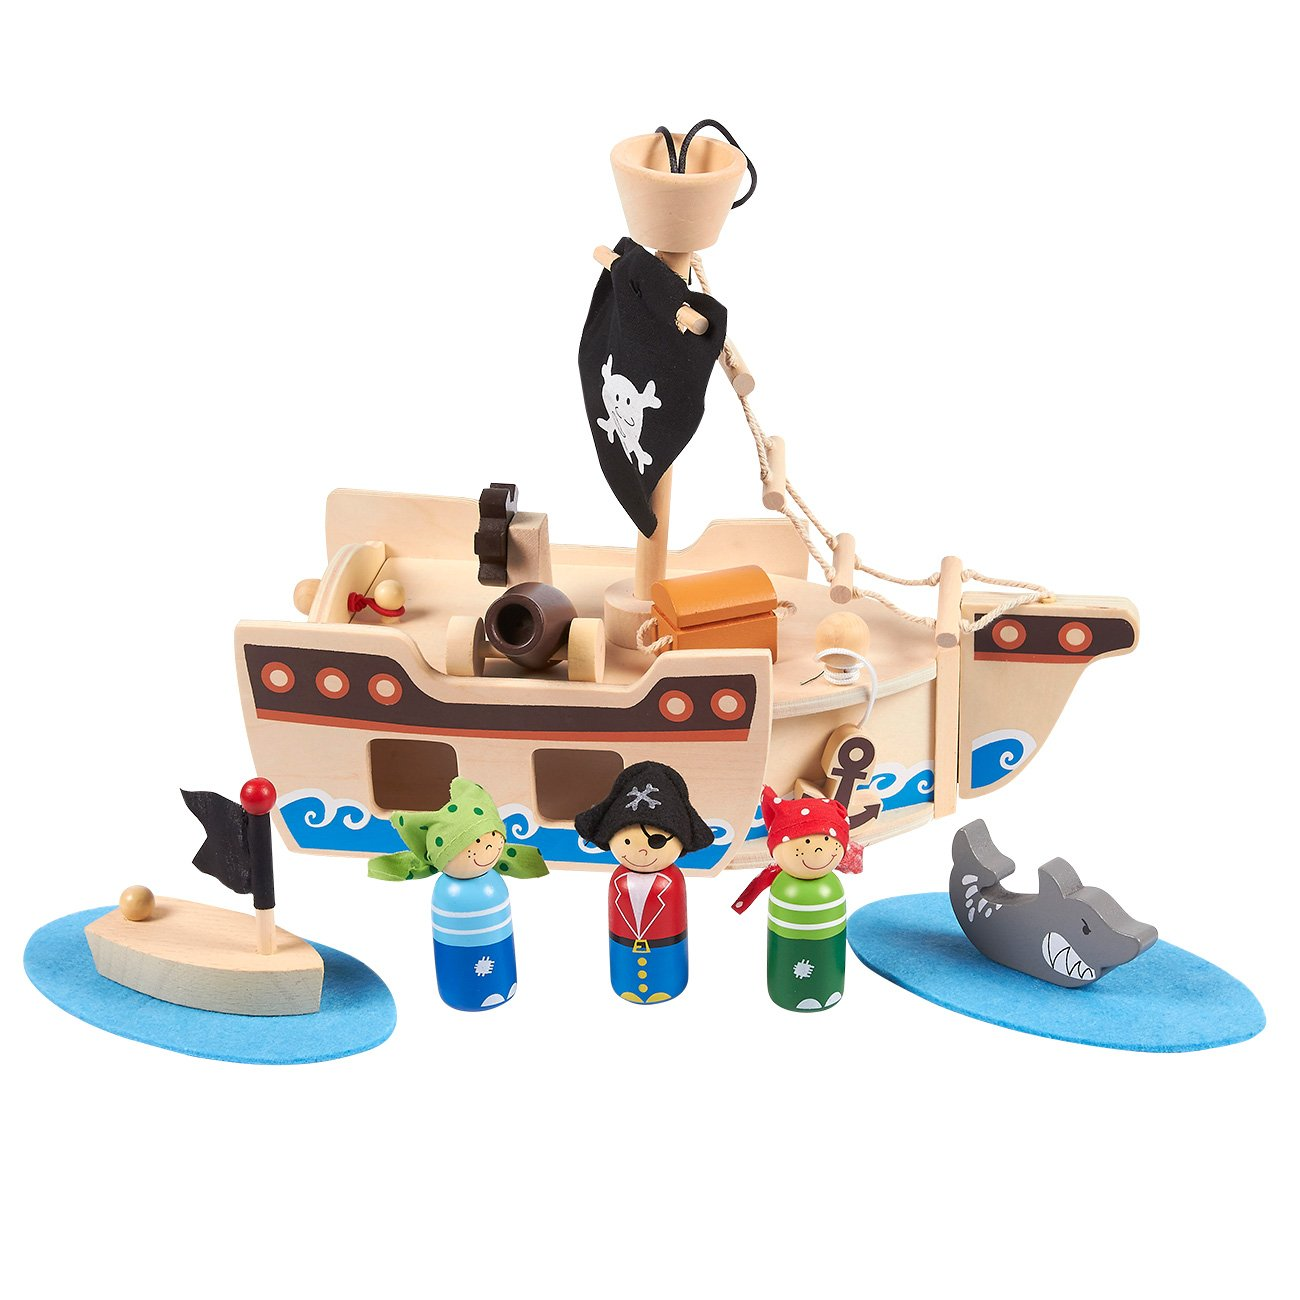 Ocean-Themed Accessories Wooden Pirate Figurines with Fun 11 Piece Set for Children Ages 3 and Up Juvale Blue Panda Pirate Toys and Kids Pirate Ship Playset